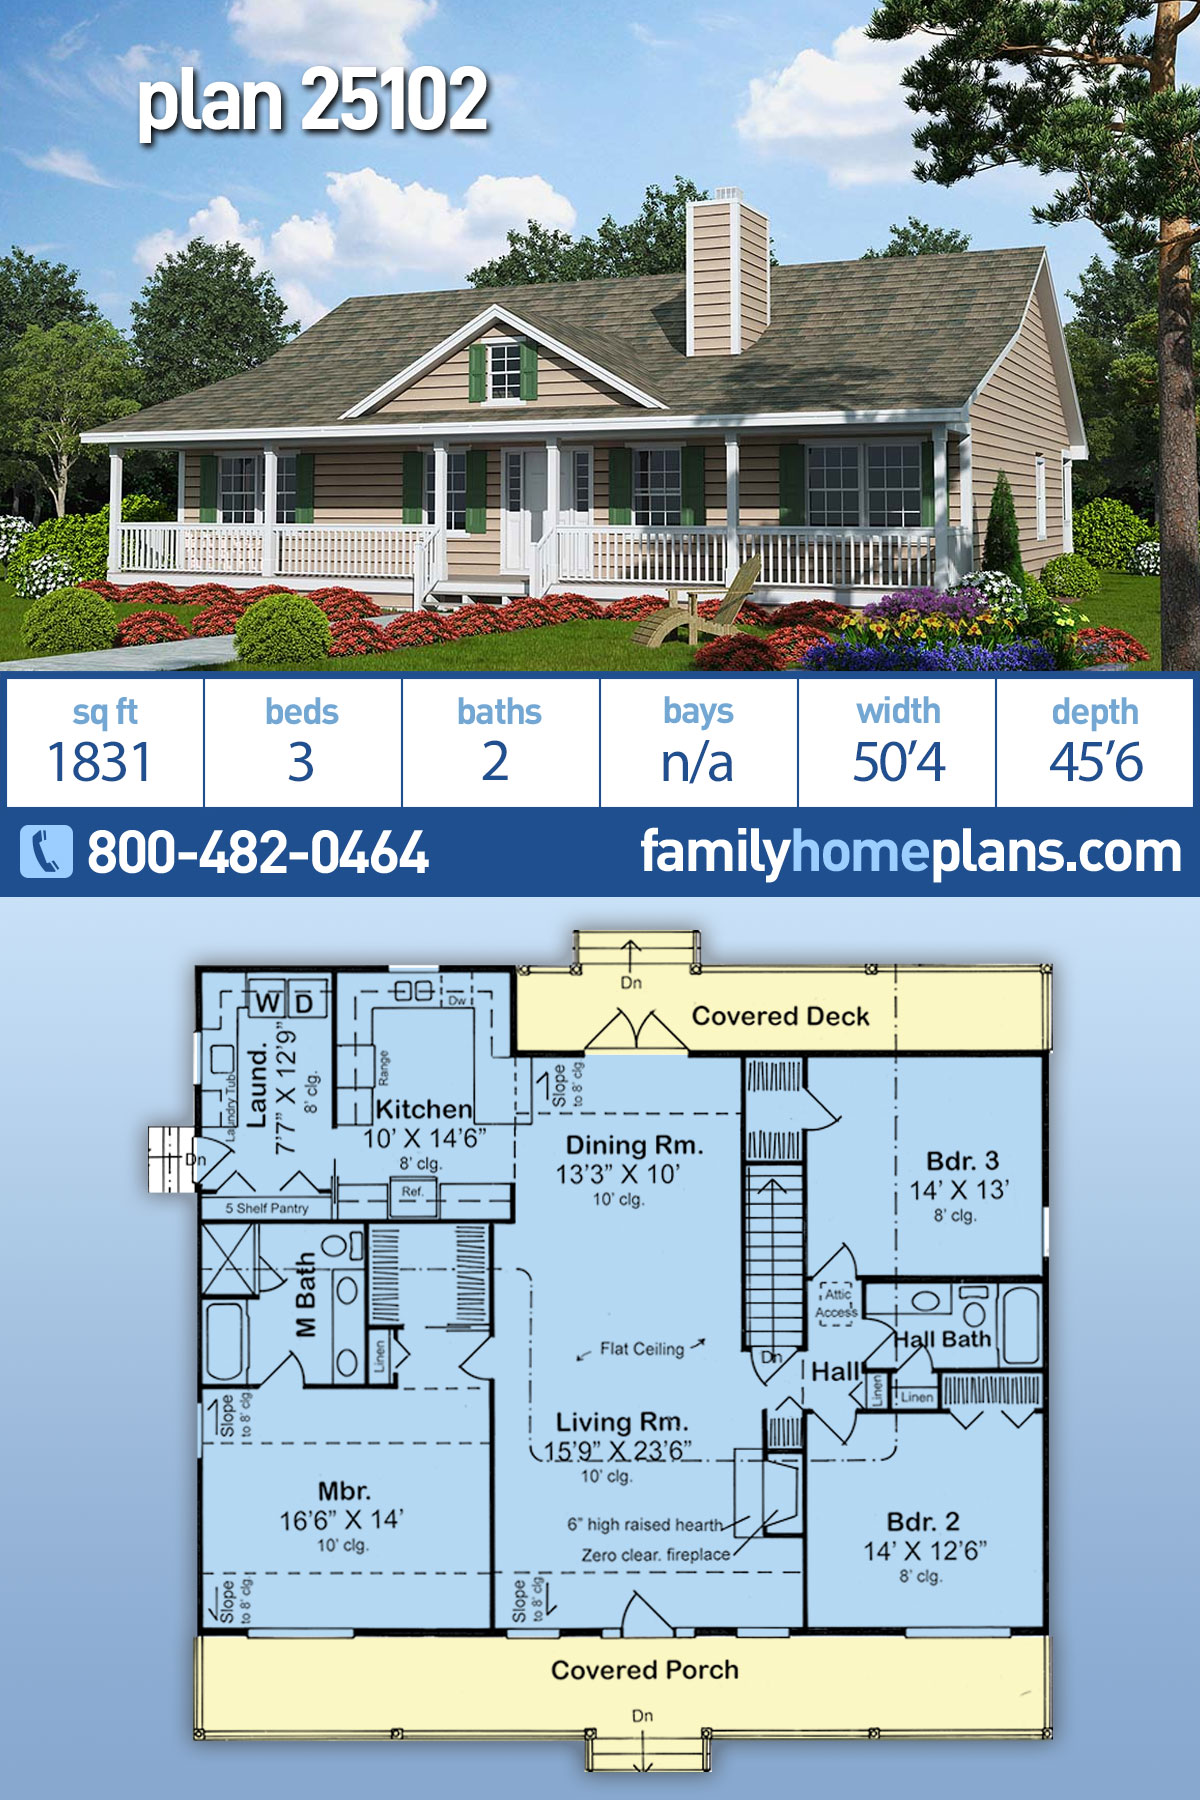 Country, Ranch, Traditional House Plan 25102 with 3 Beds, 2 Baths